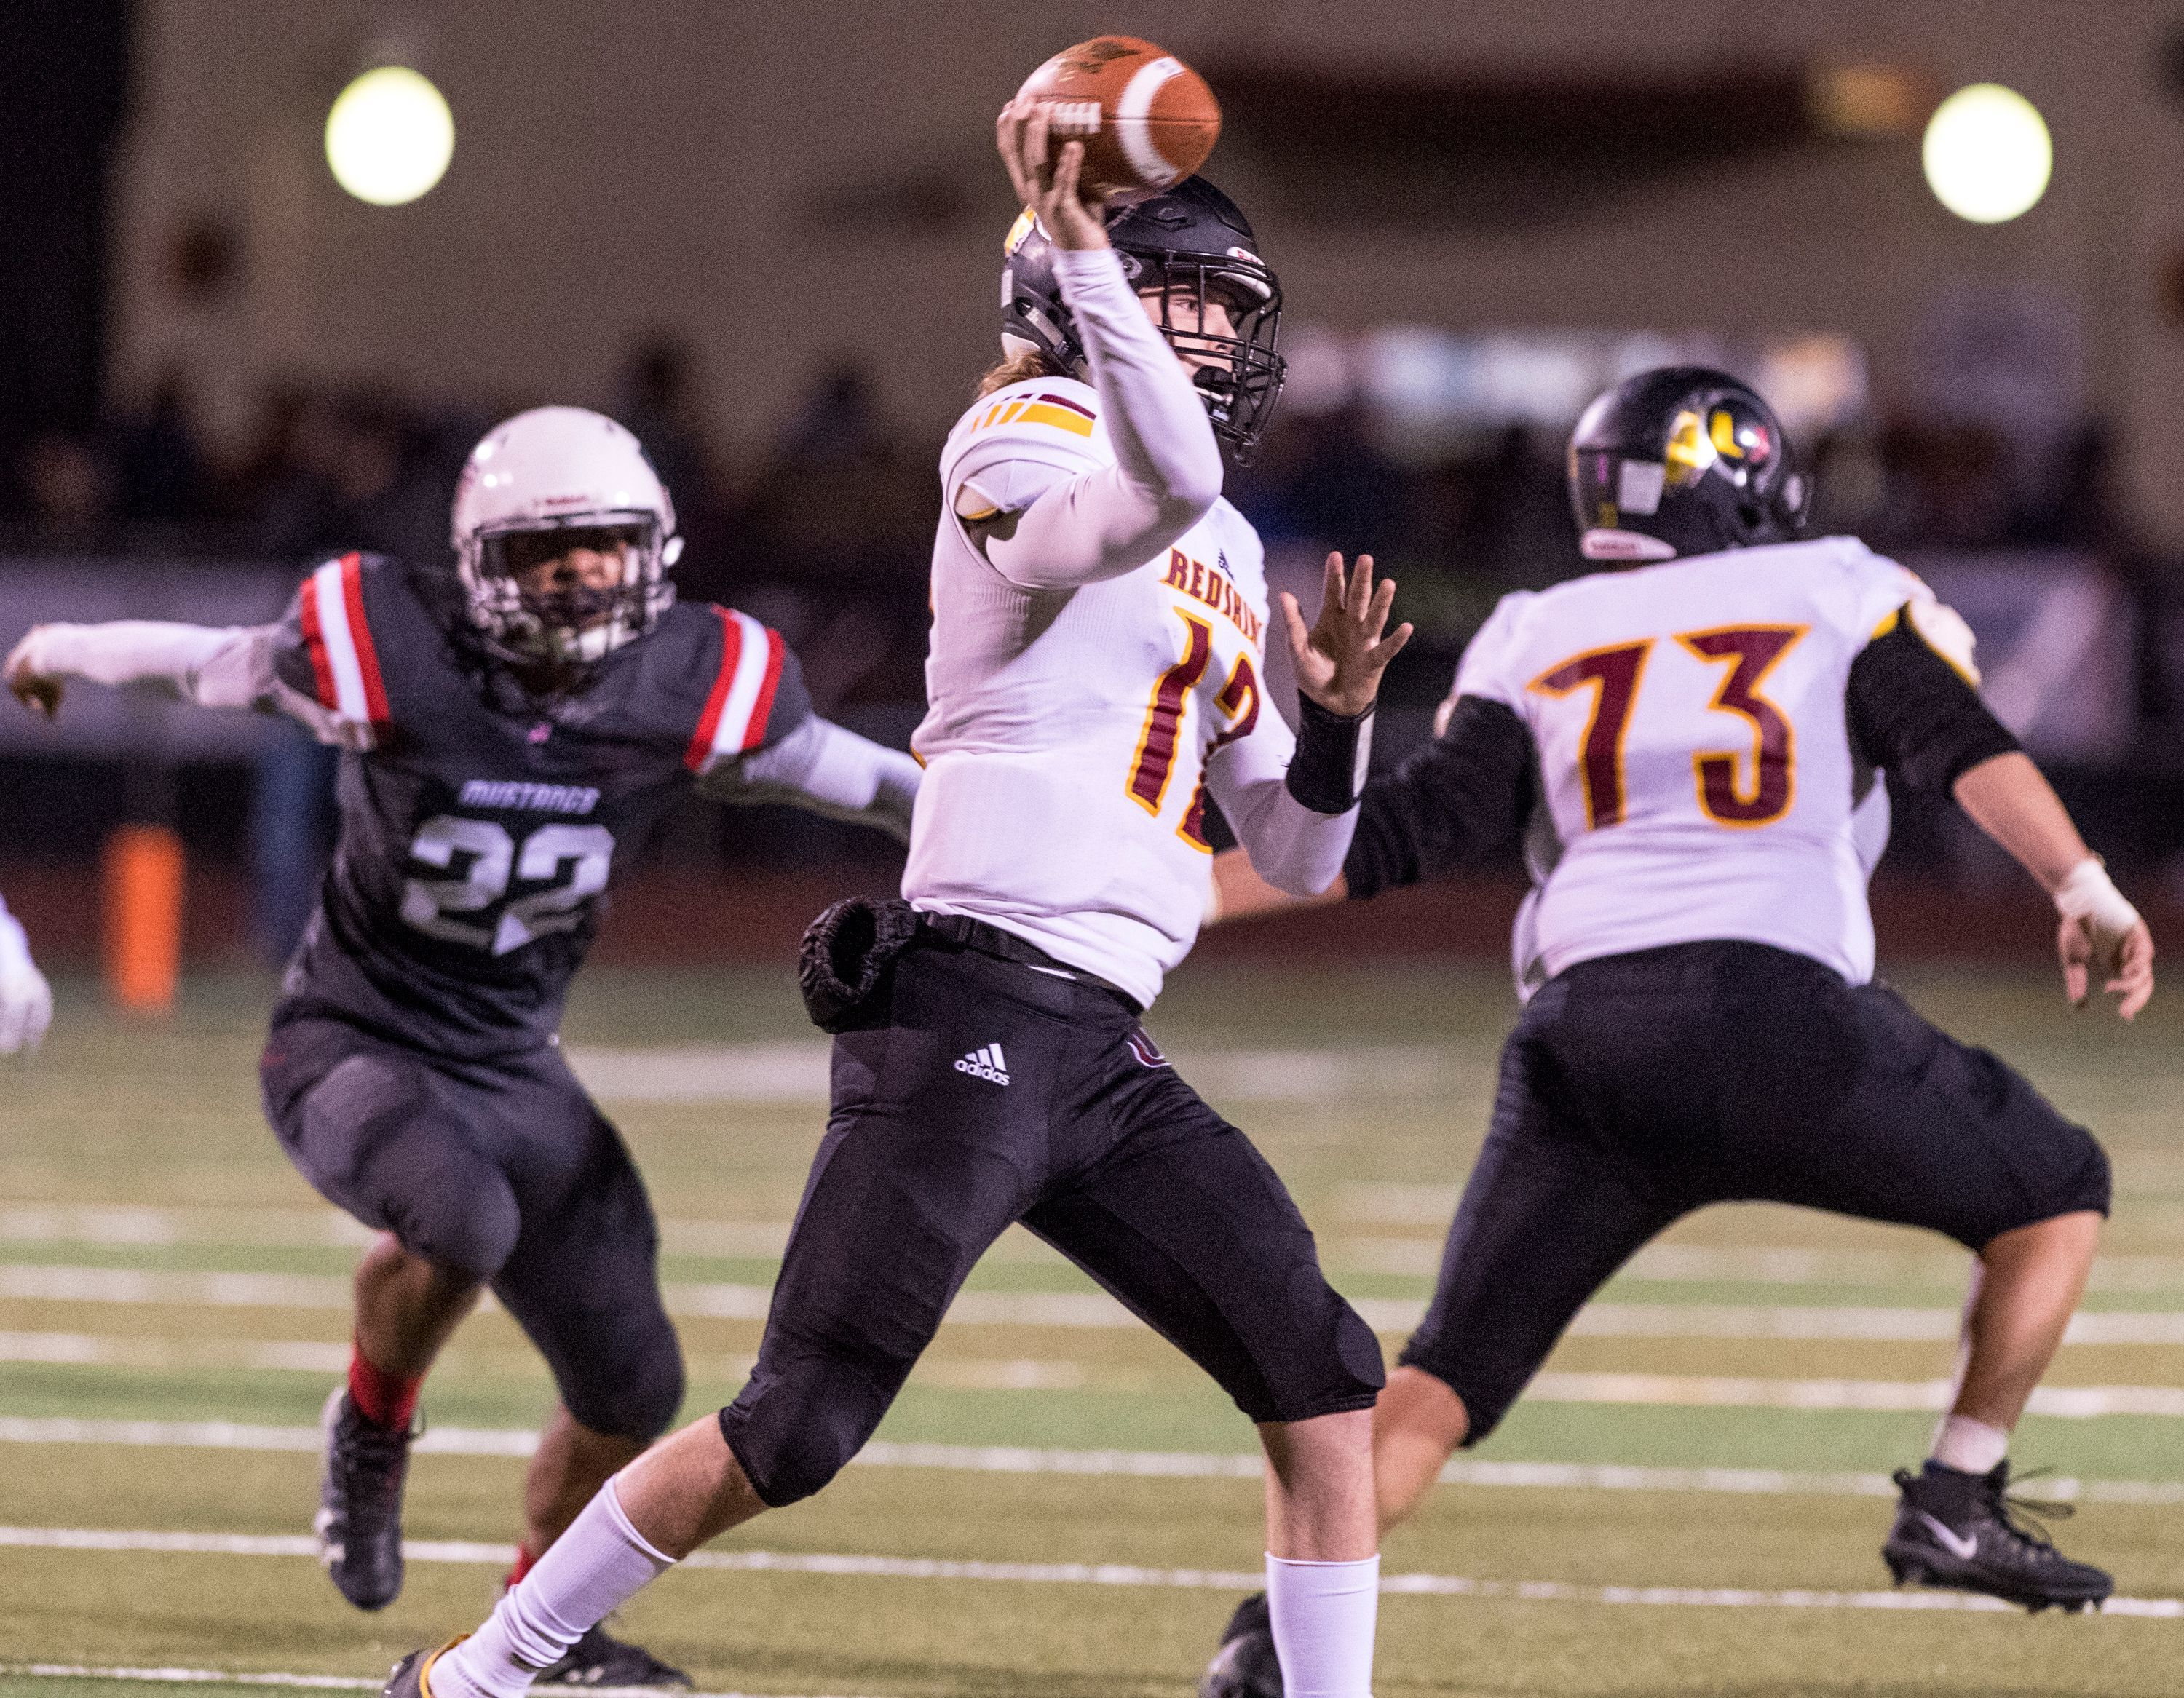 Tulare Union quarterback Nathan Lamb passes against Tulare Western in the annual Bell game at Bob Mathias Stadium on Friday, November 3, 2017. The Tribe have won the past two Bell Games.